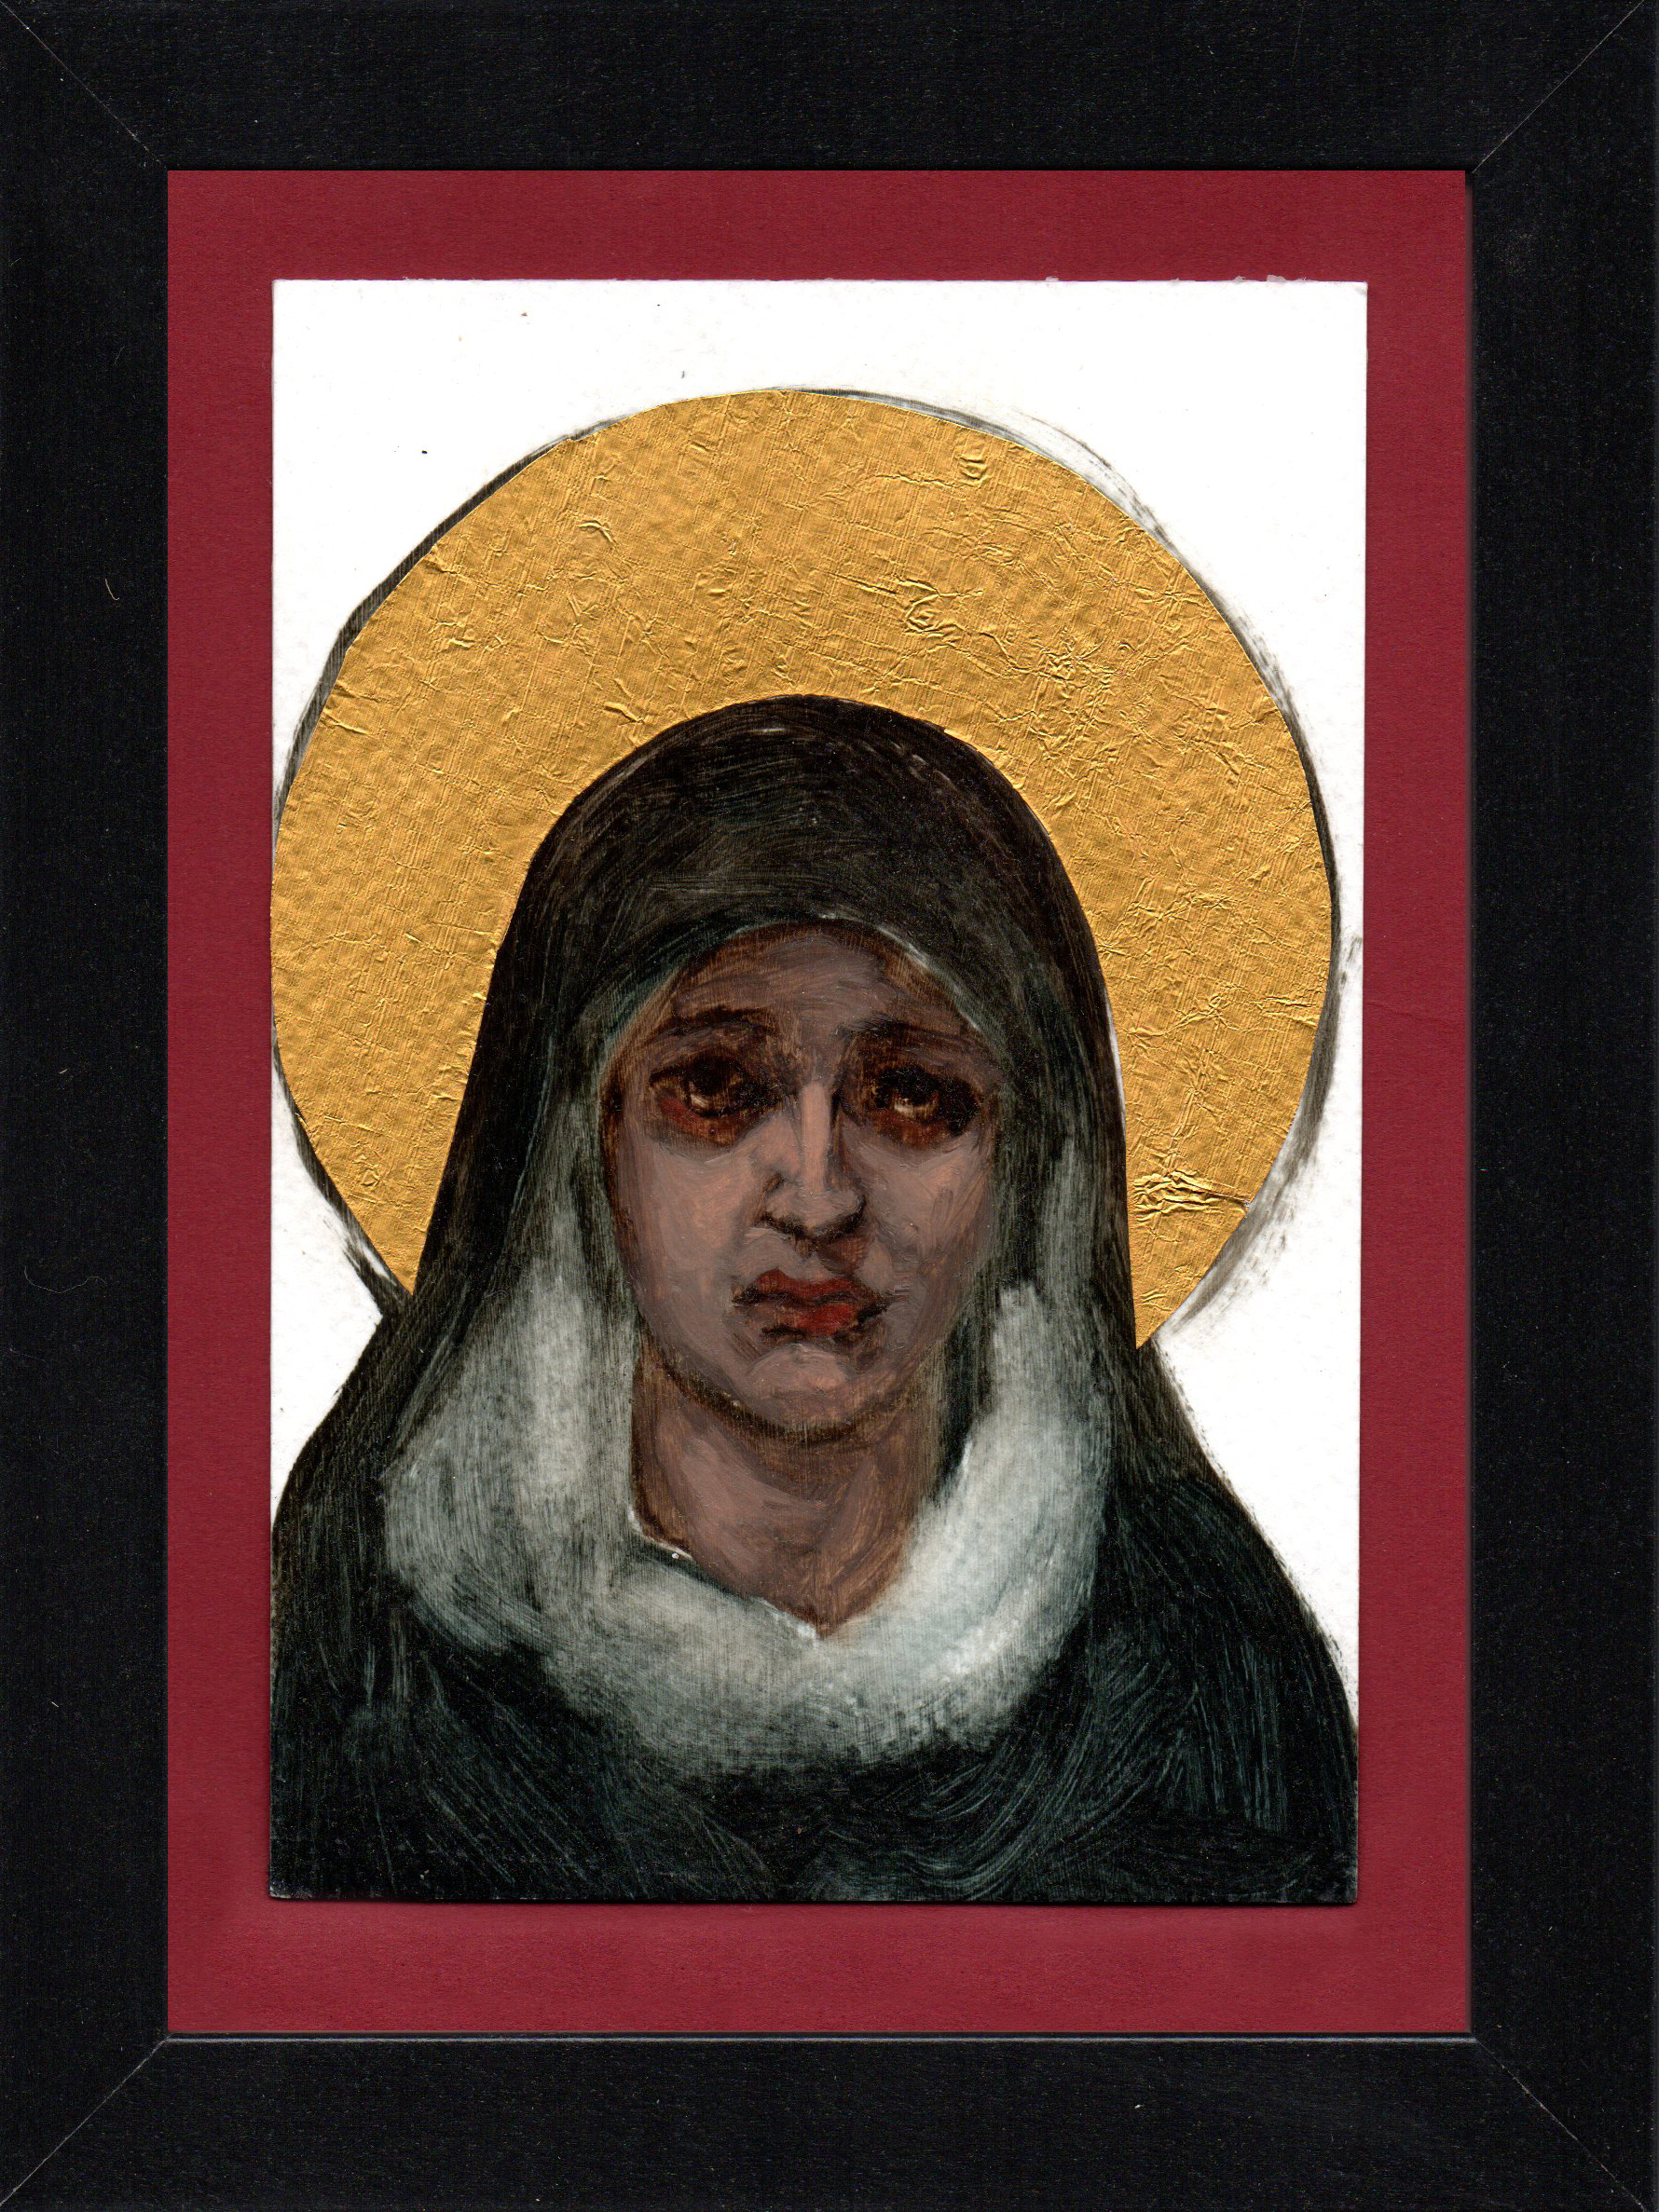 "Postcard Saint 6, oil & gold foil on paper 10.5 x 15 cm (4"" x 6""), 2016"